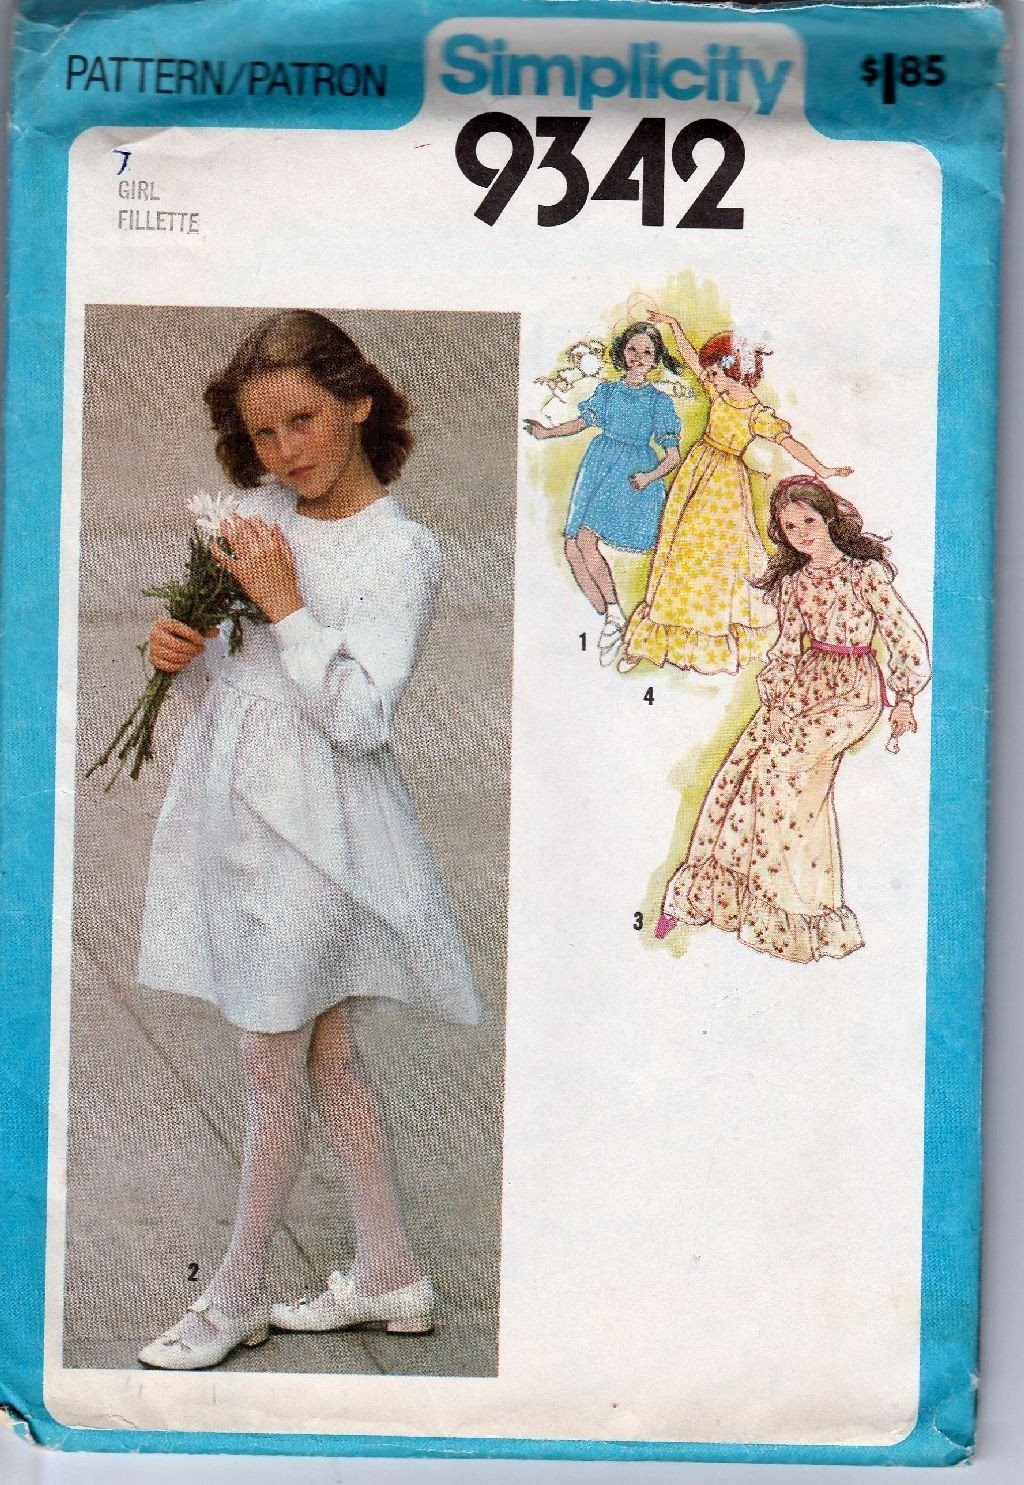 Simplicity 9342 Vintage 1970's Sewing Pattern Girls Flower Girl Dress Wedding Gown - VintageStitching - Vintage Sewing Patterns